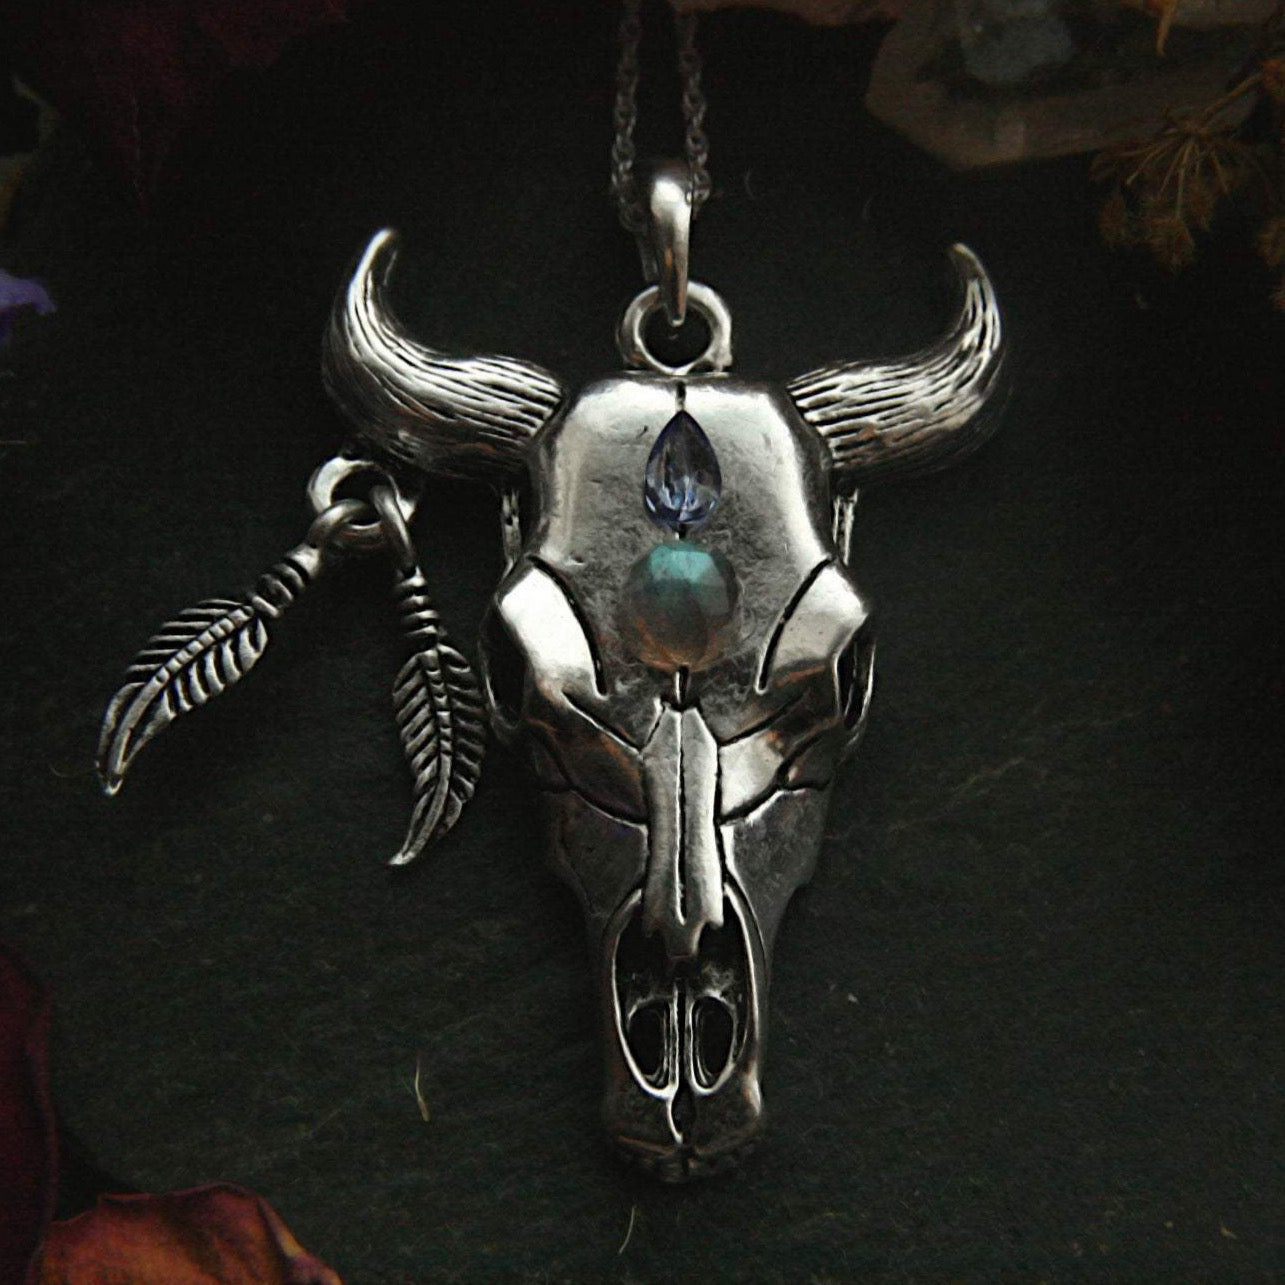 Cattle Skull Necklace with Gemstones - Andune Jewellery